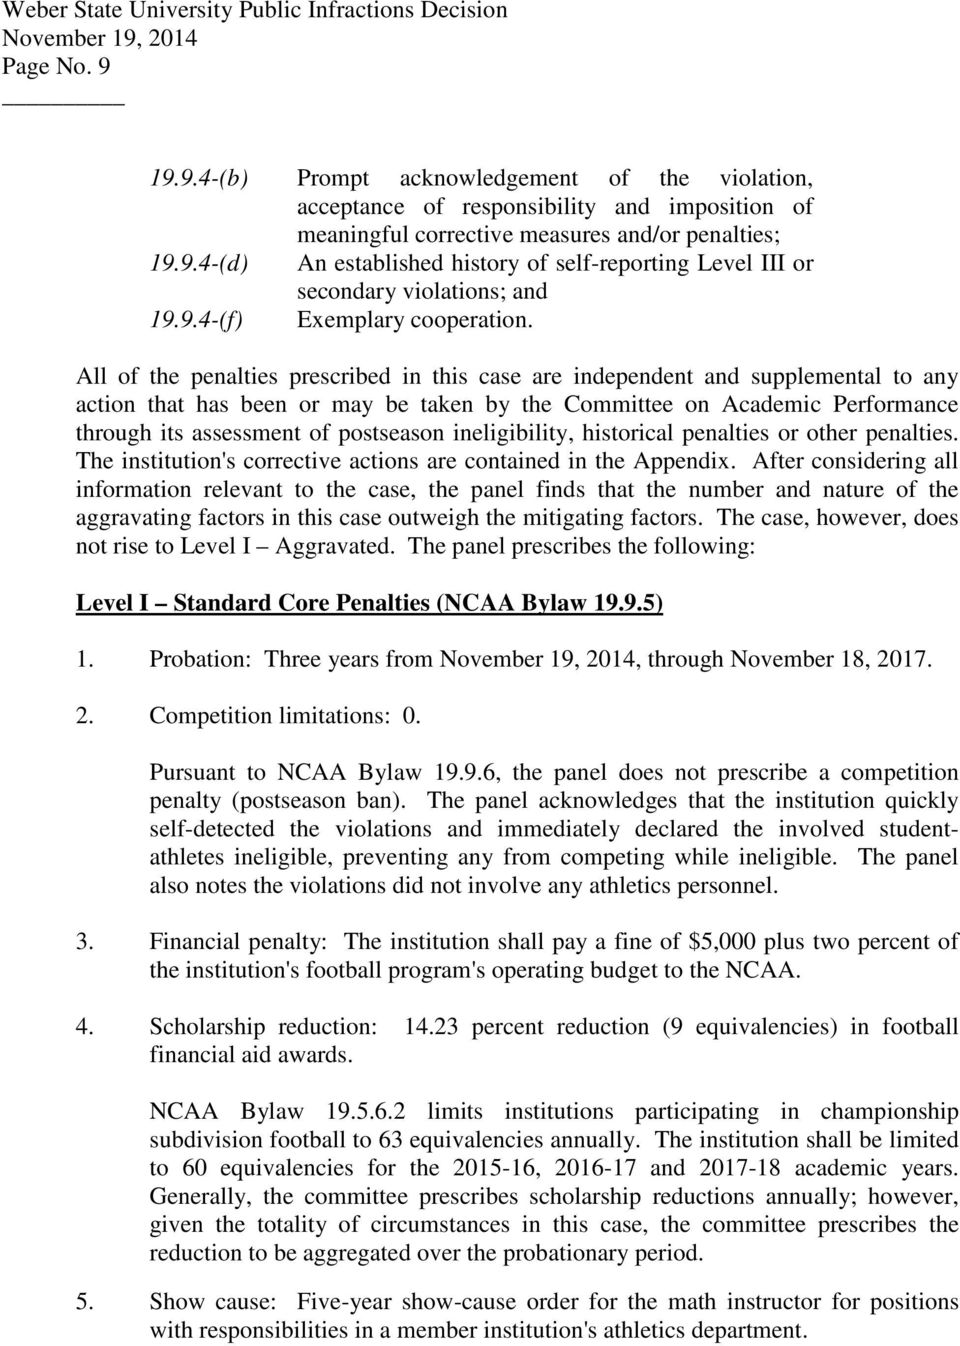 All of the penalties prescribed in this case are independent and supplemental to any action that has been or may be taken by the Committee on Academic Performance through its assessment of postseason